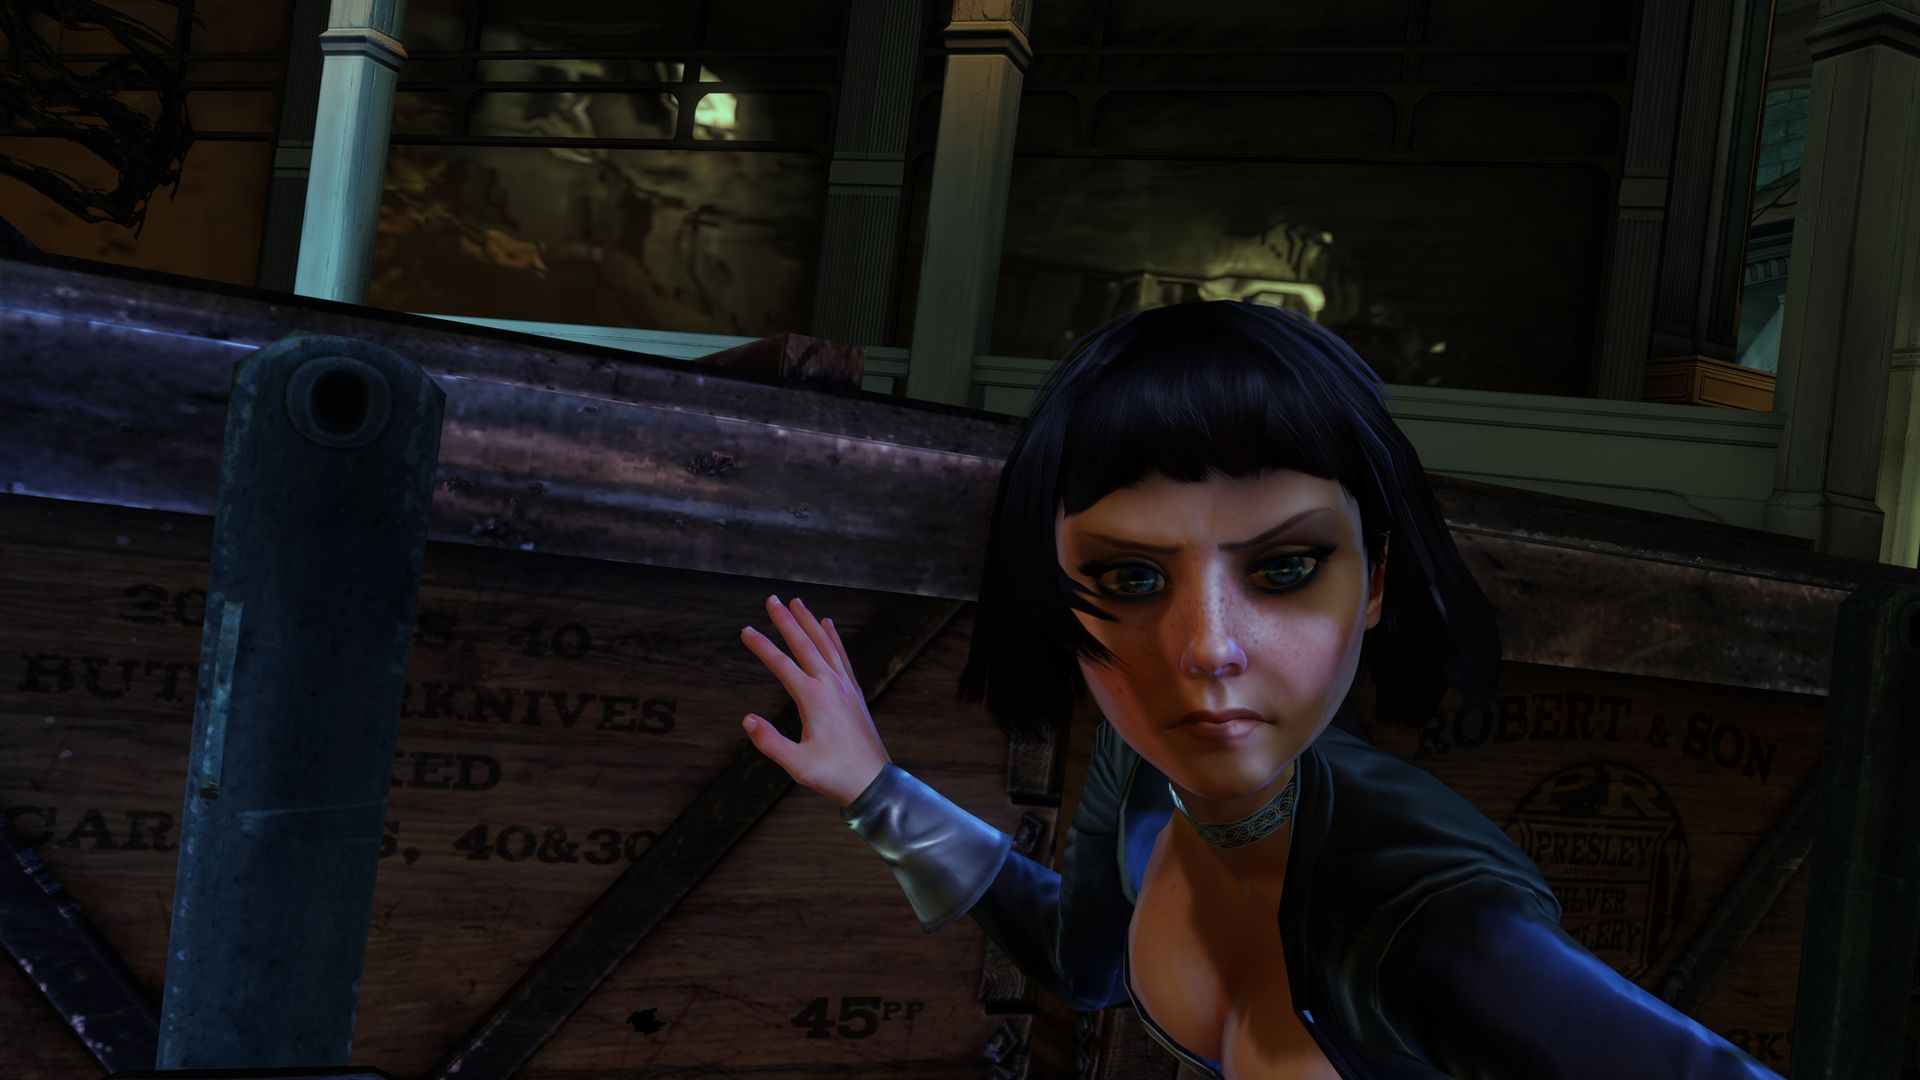 No Move Support for BioShock Infinite, 3D Possible